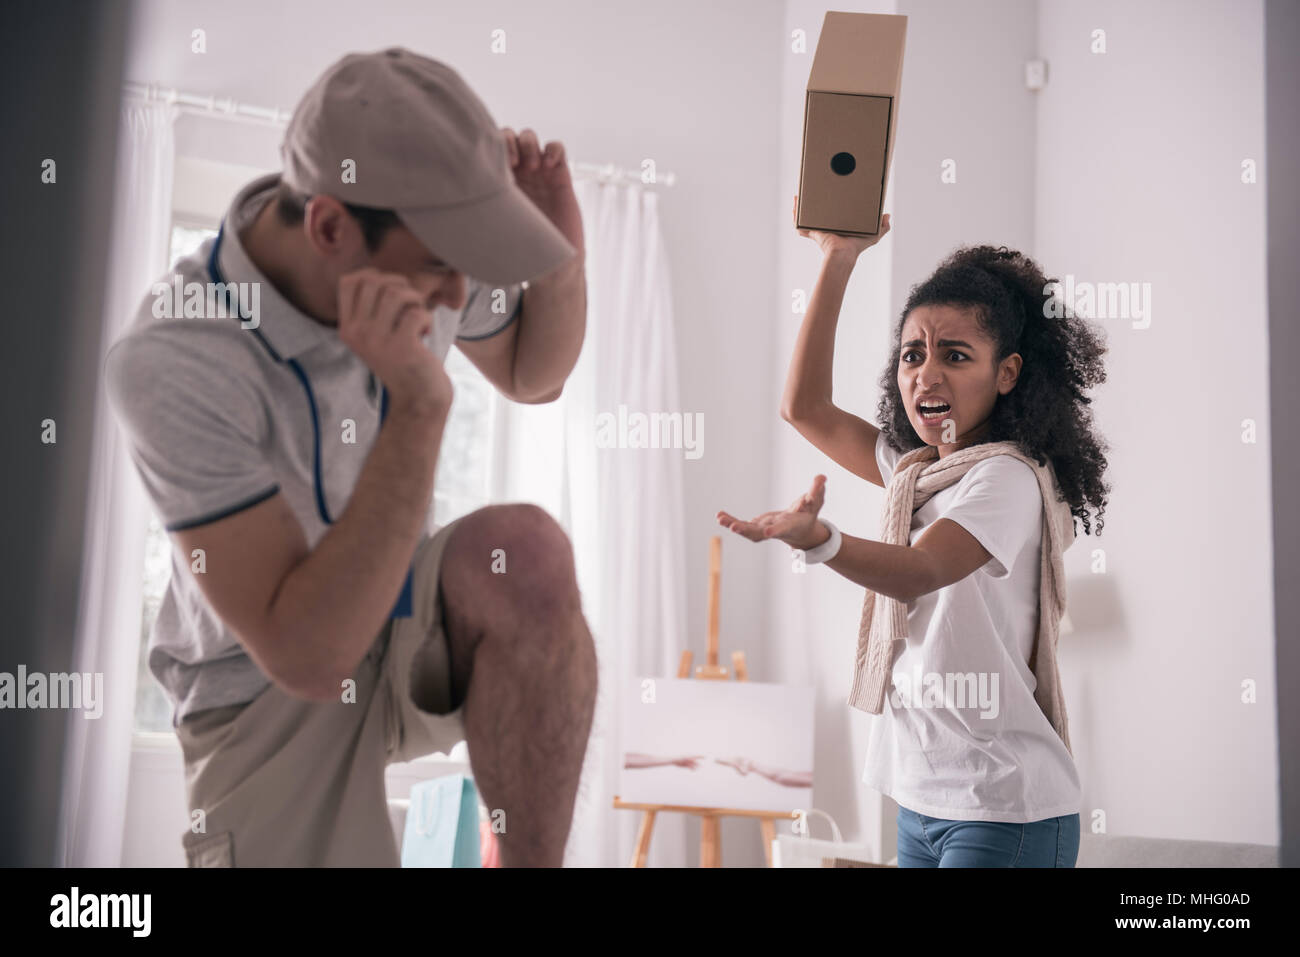 Angry young woman shouting at the courier - Stock Image